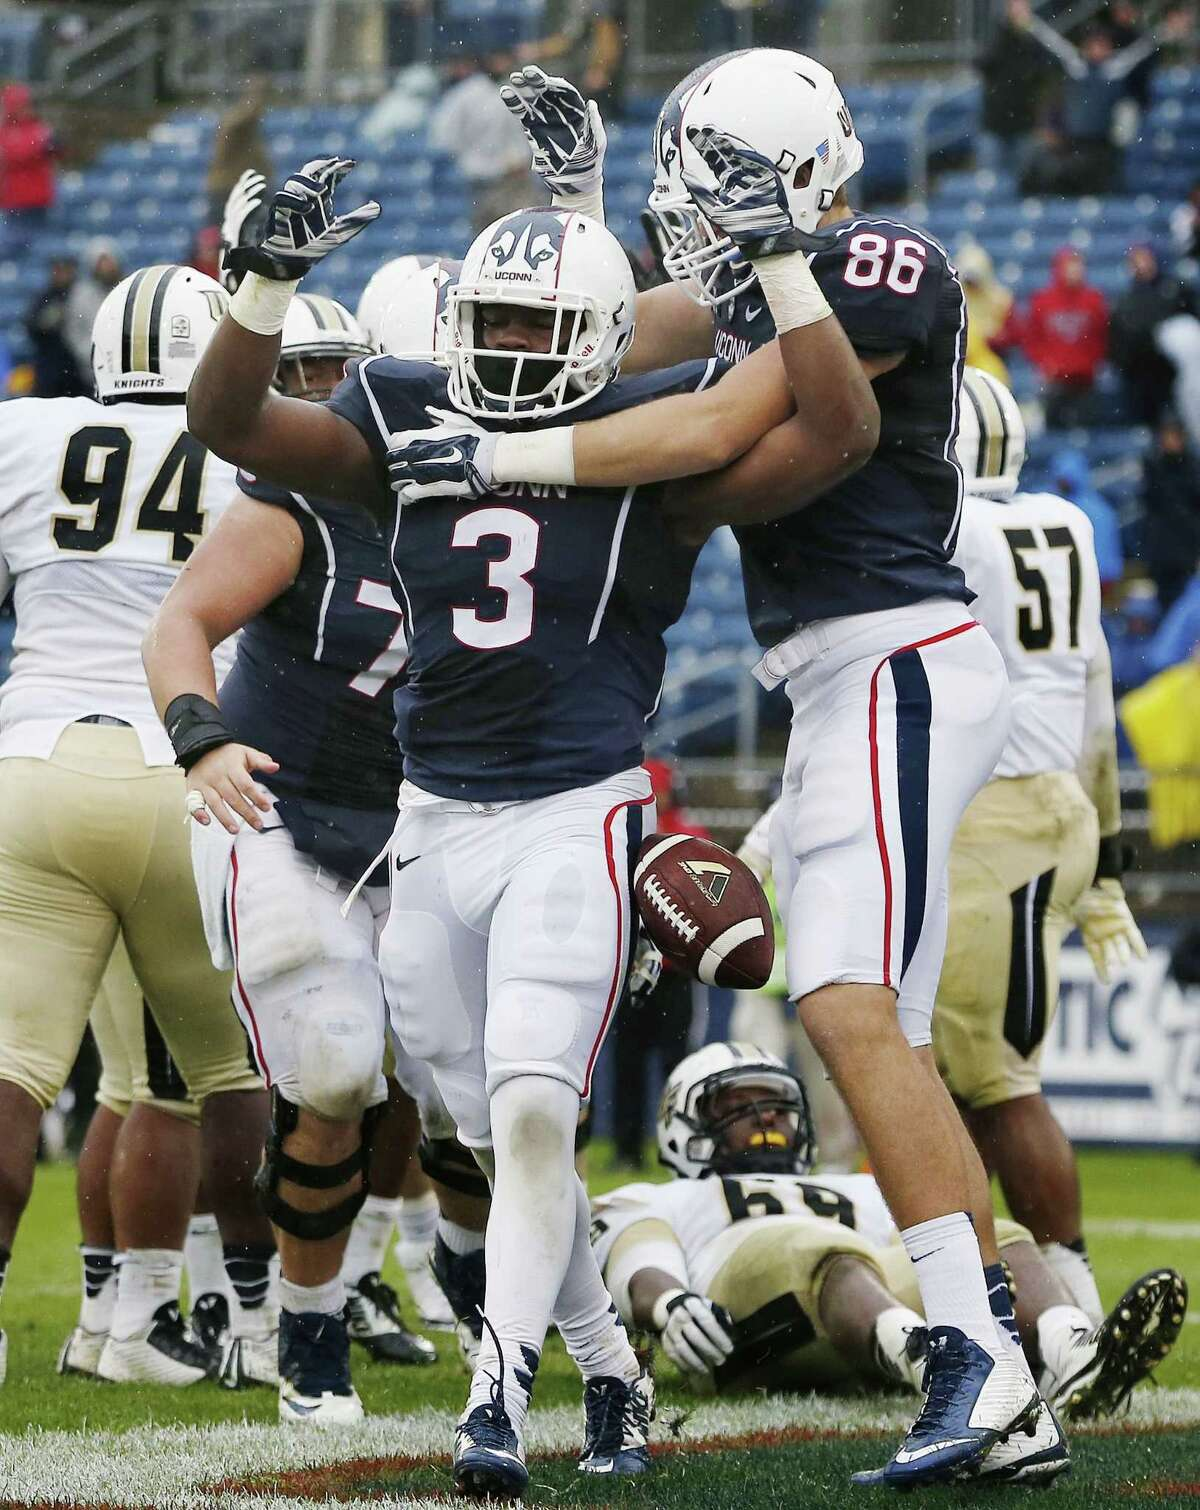 UConn running back Ron Johnson celebrates his touchdown with teammate Alec Bloom (86) in the fourth quarter of the Huskies' 37-29 win on Saturday afternoon at Rentschler Field in East Hartford.